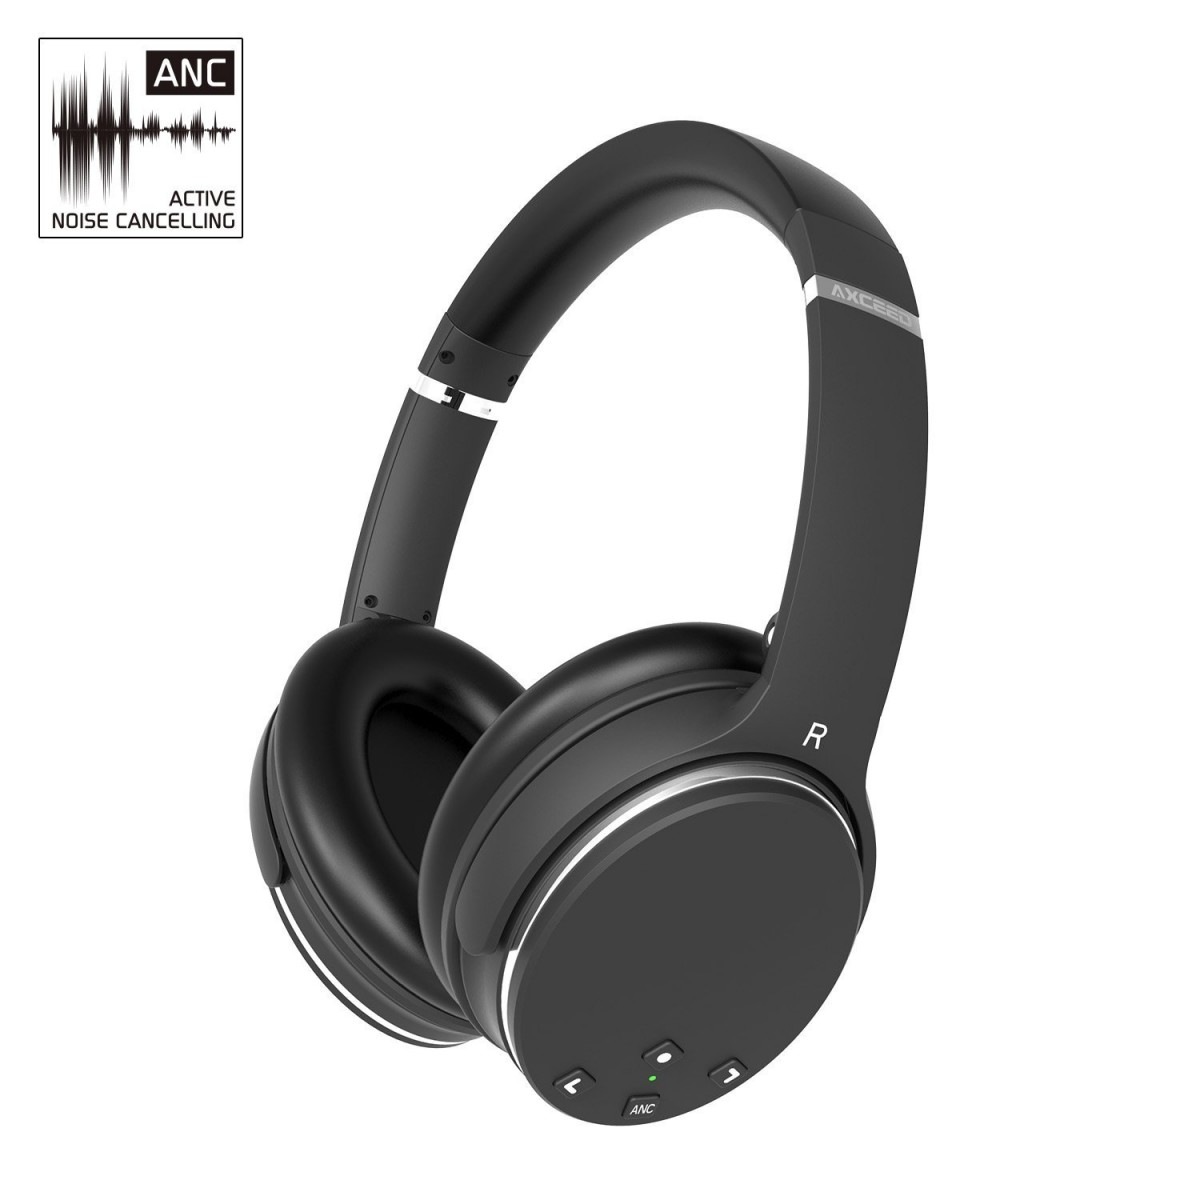 axceed noise cancelling headphones review